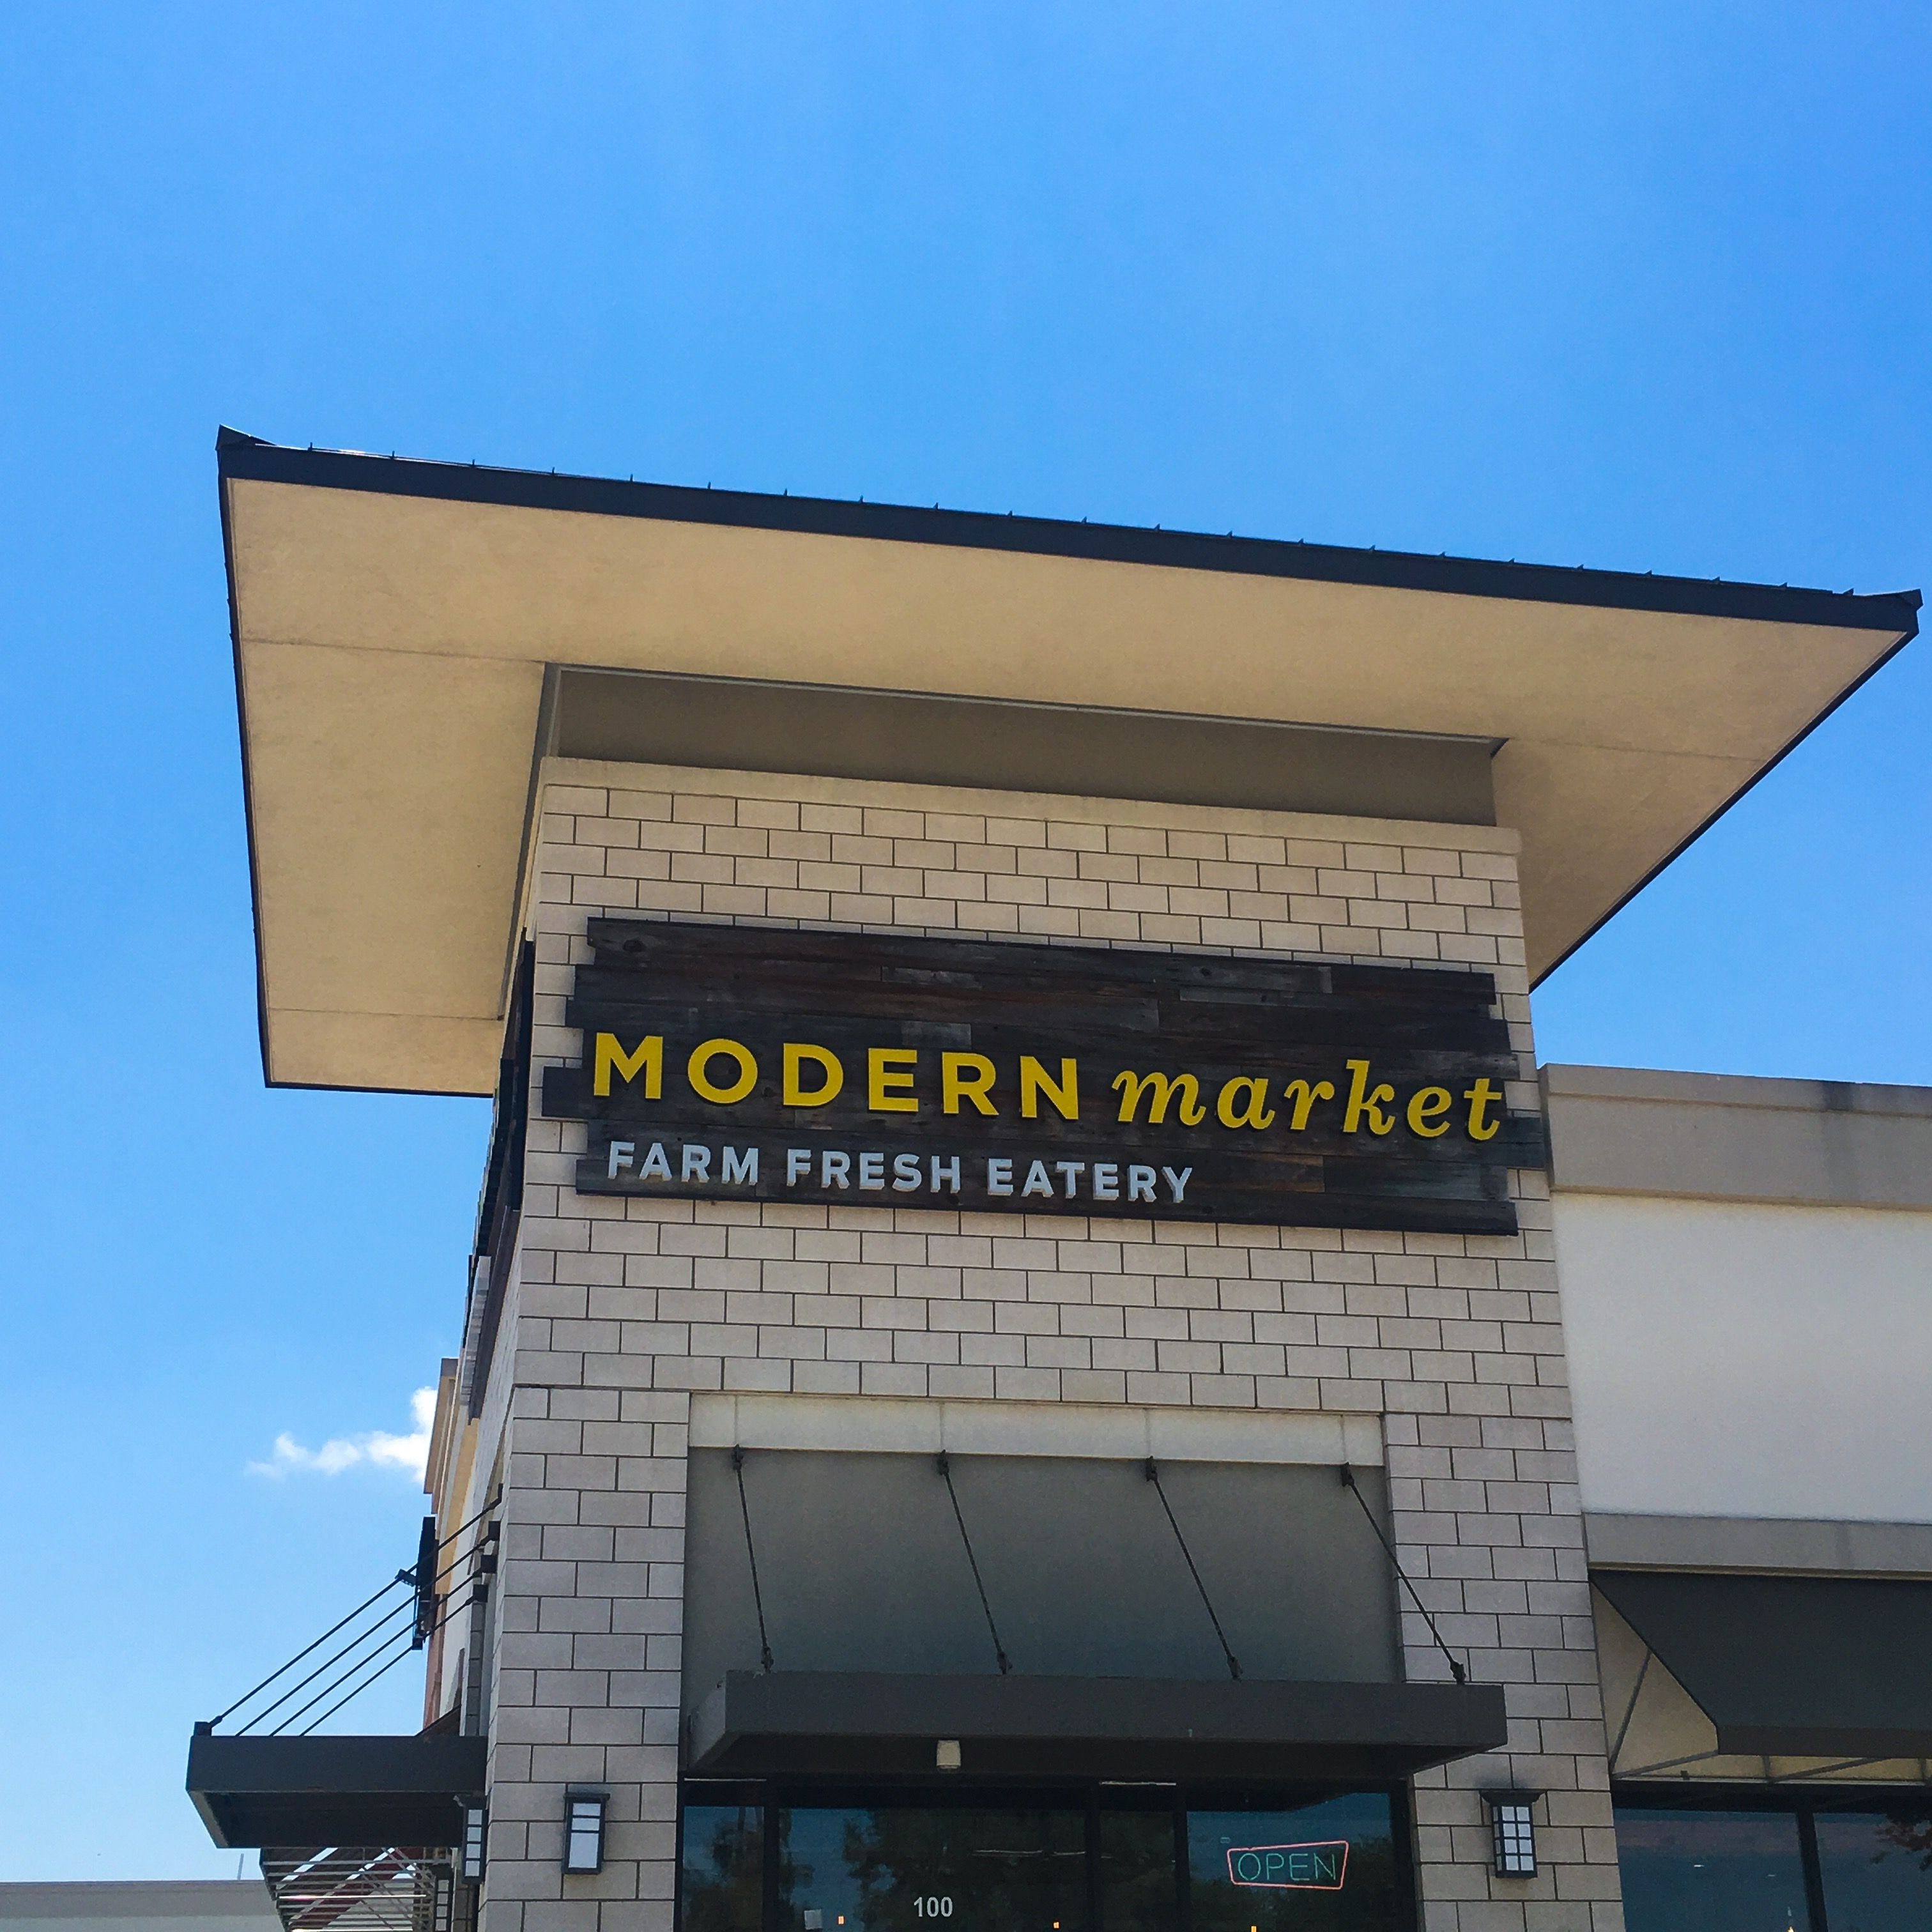 Modern Market in Plano, TX Are Their Greens and Meats a